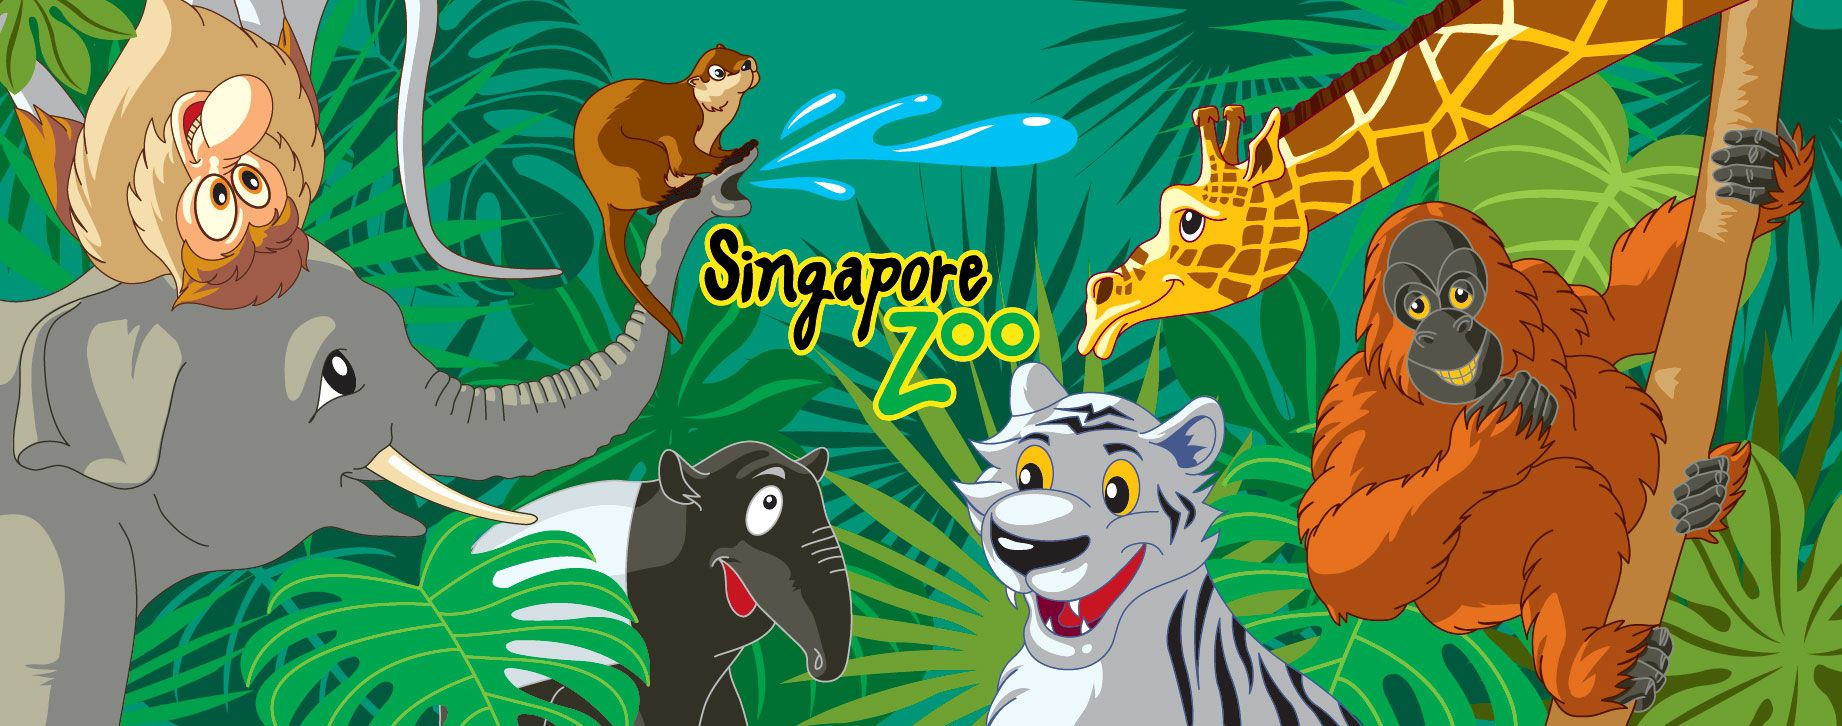 Singapore zoo clipart clip free library Singapore Zoo | Illustrations by Anthony Tan | Singapore zoo ... clip free library